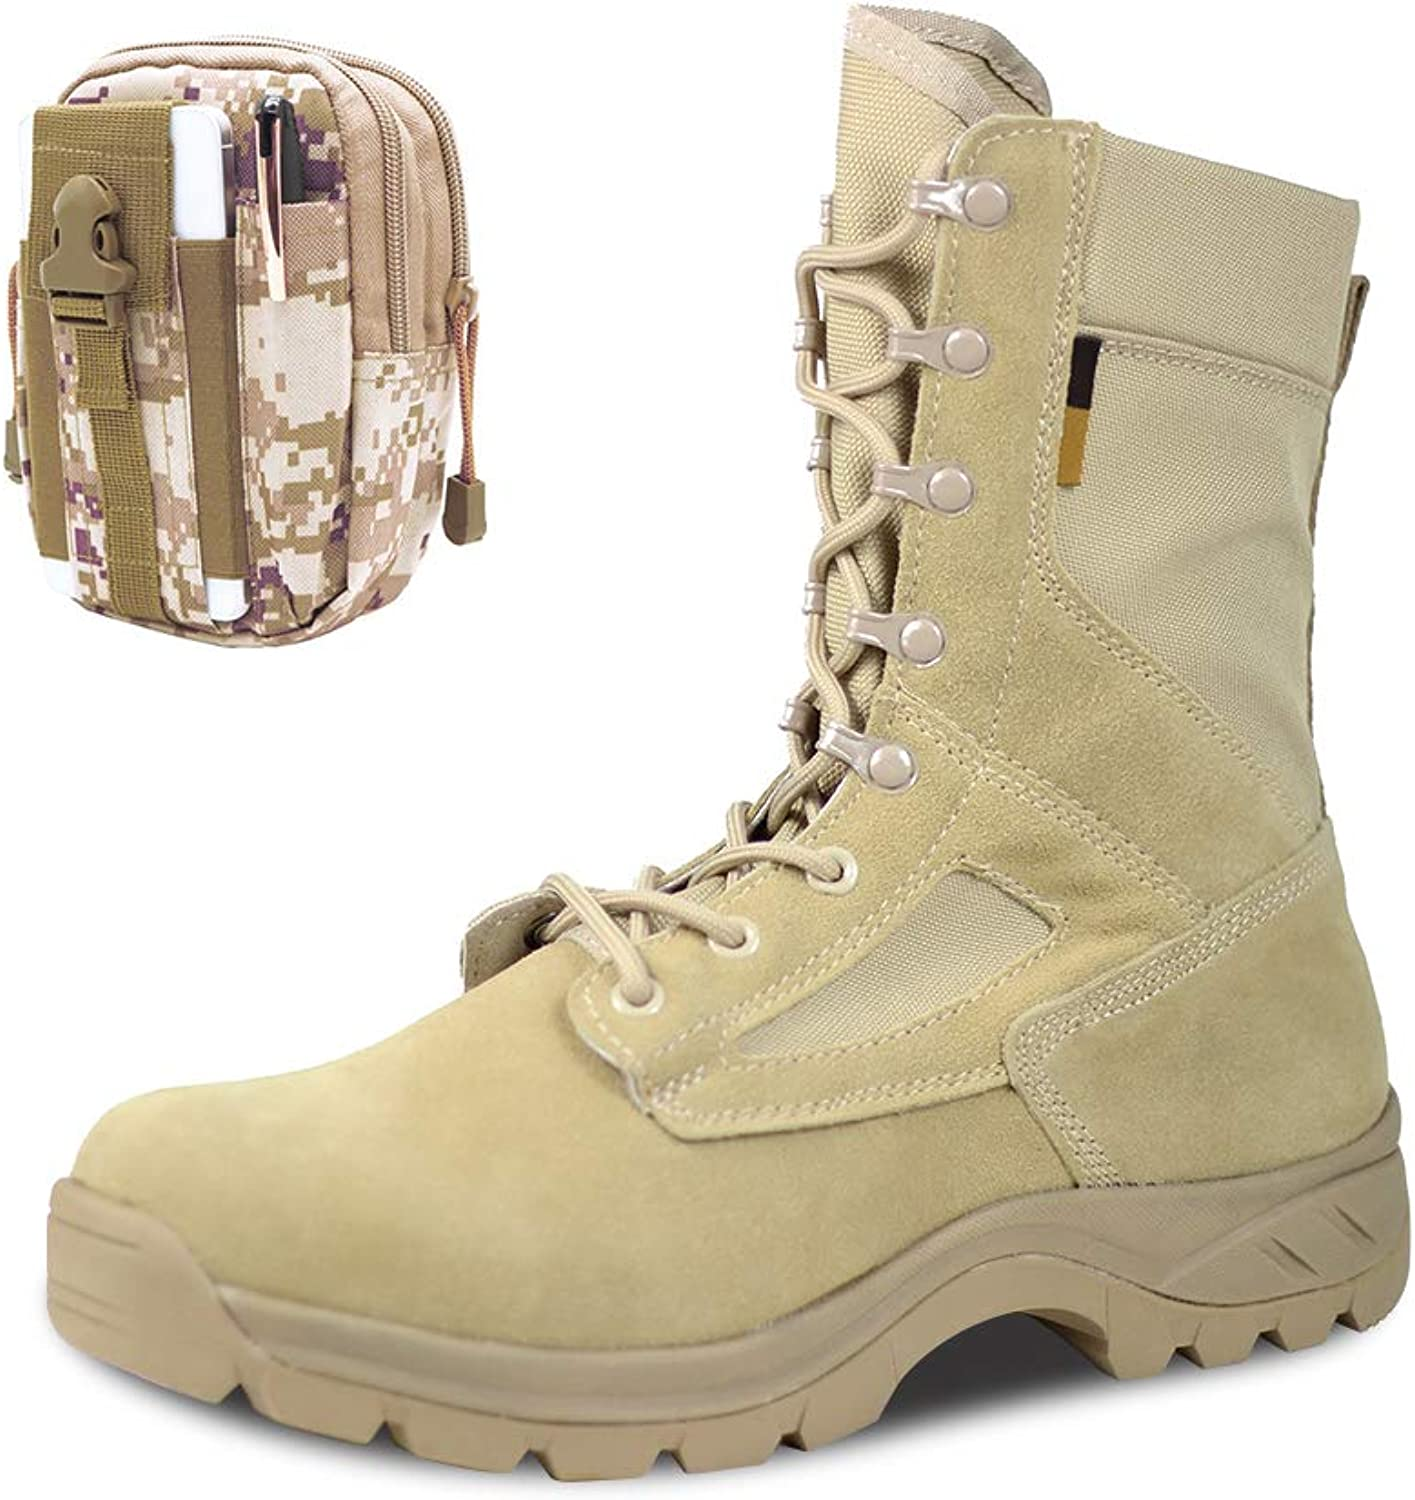 PANY Military Boots Brathable Jungle Boots Men Desert Tactical Boots Lace Up Boots with Military Waist Bag